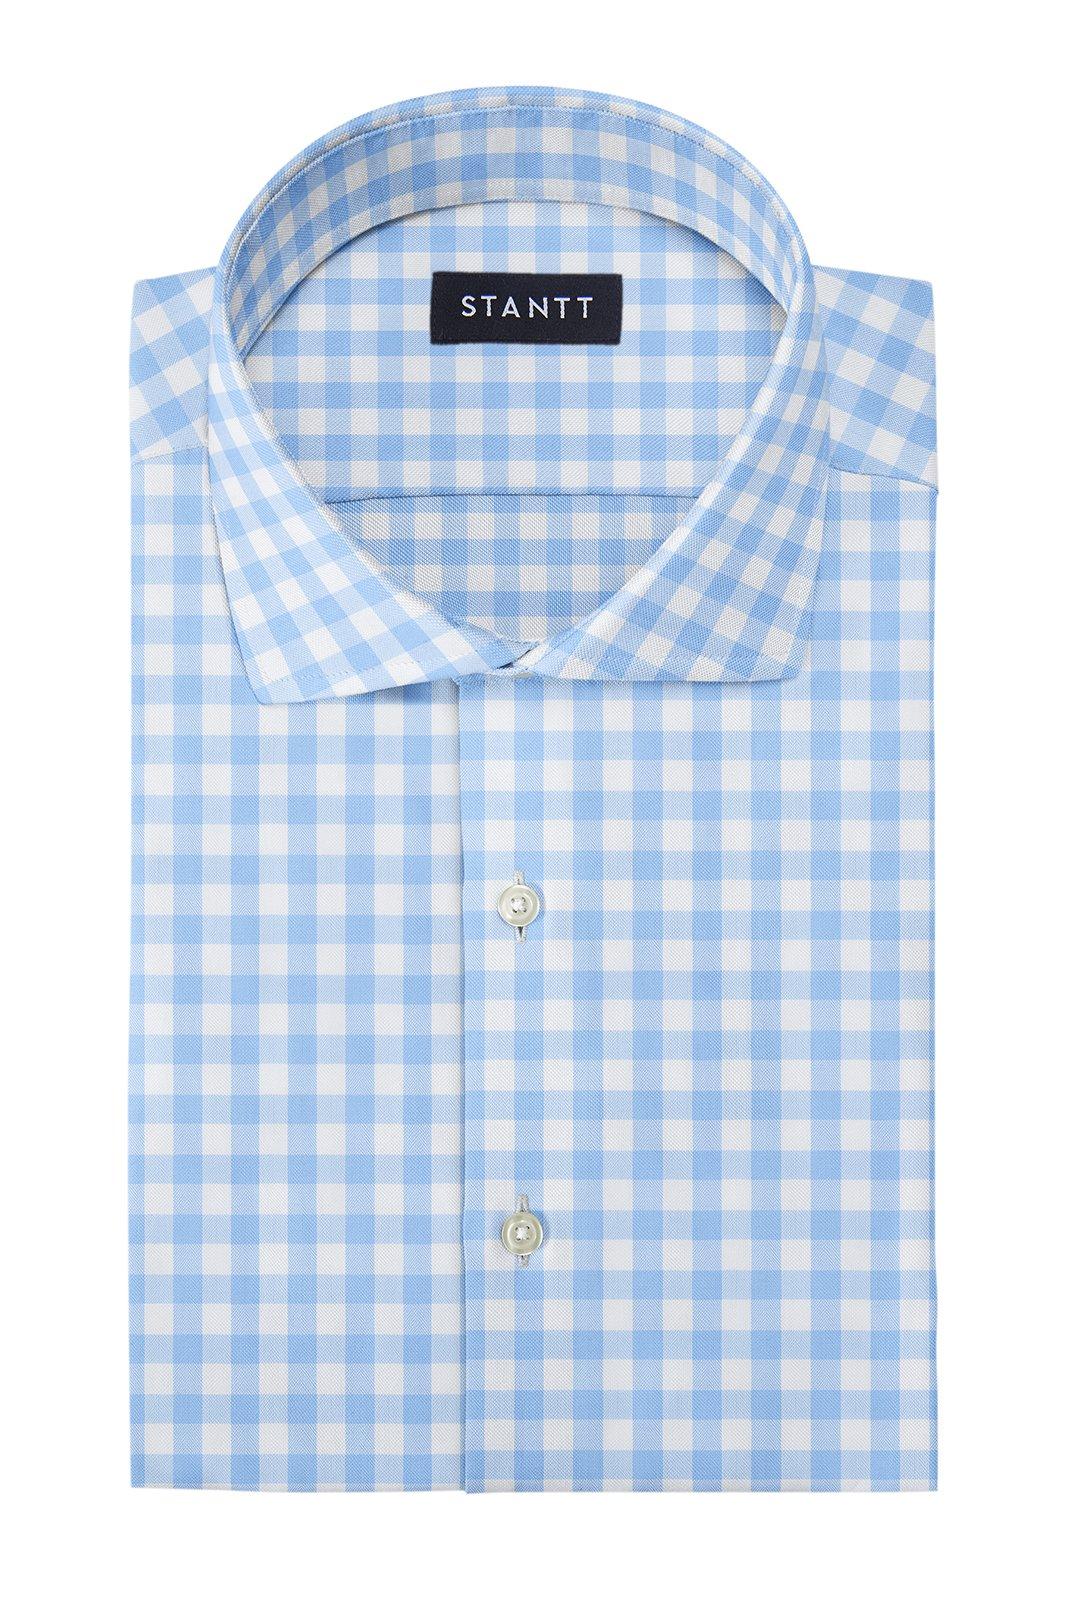 Duca Light Blue Gingham: Cutaway Collar, Barrel Cuff